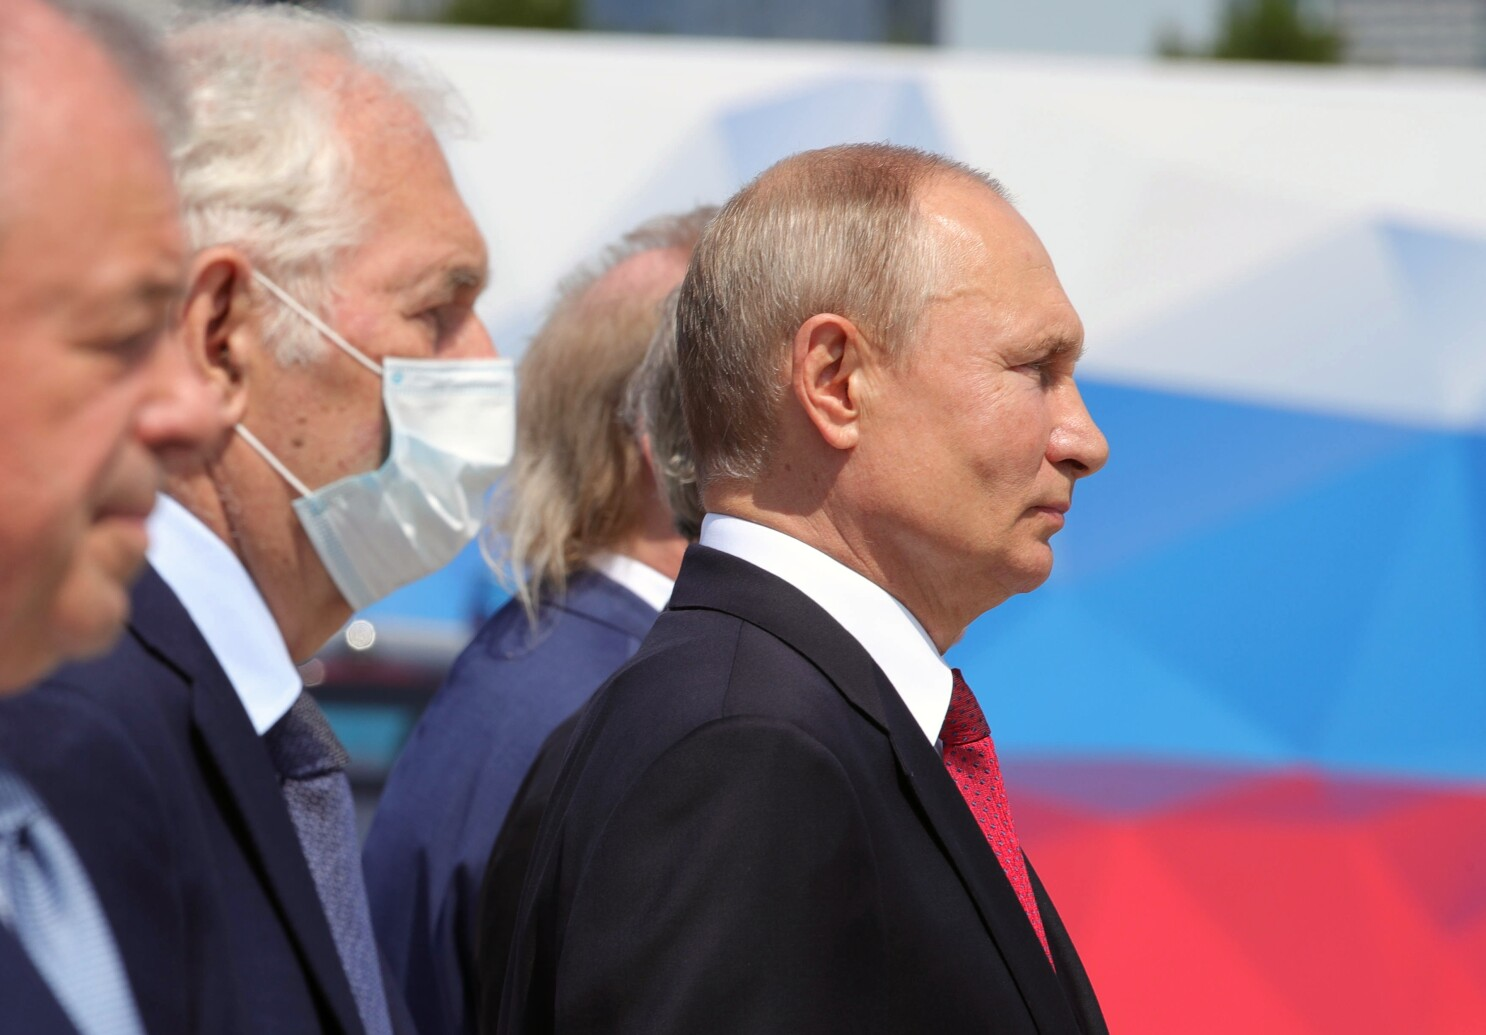 Putin Attends First Public Event After Months Of Coronavirus Lockdown Los Angeles Times